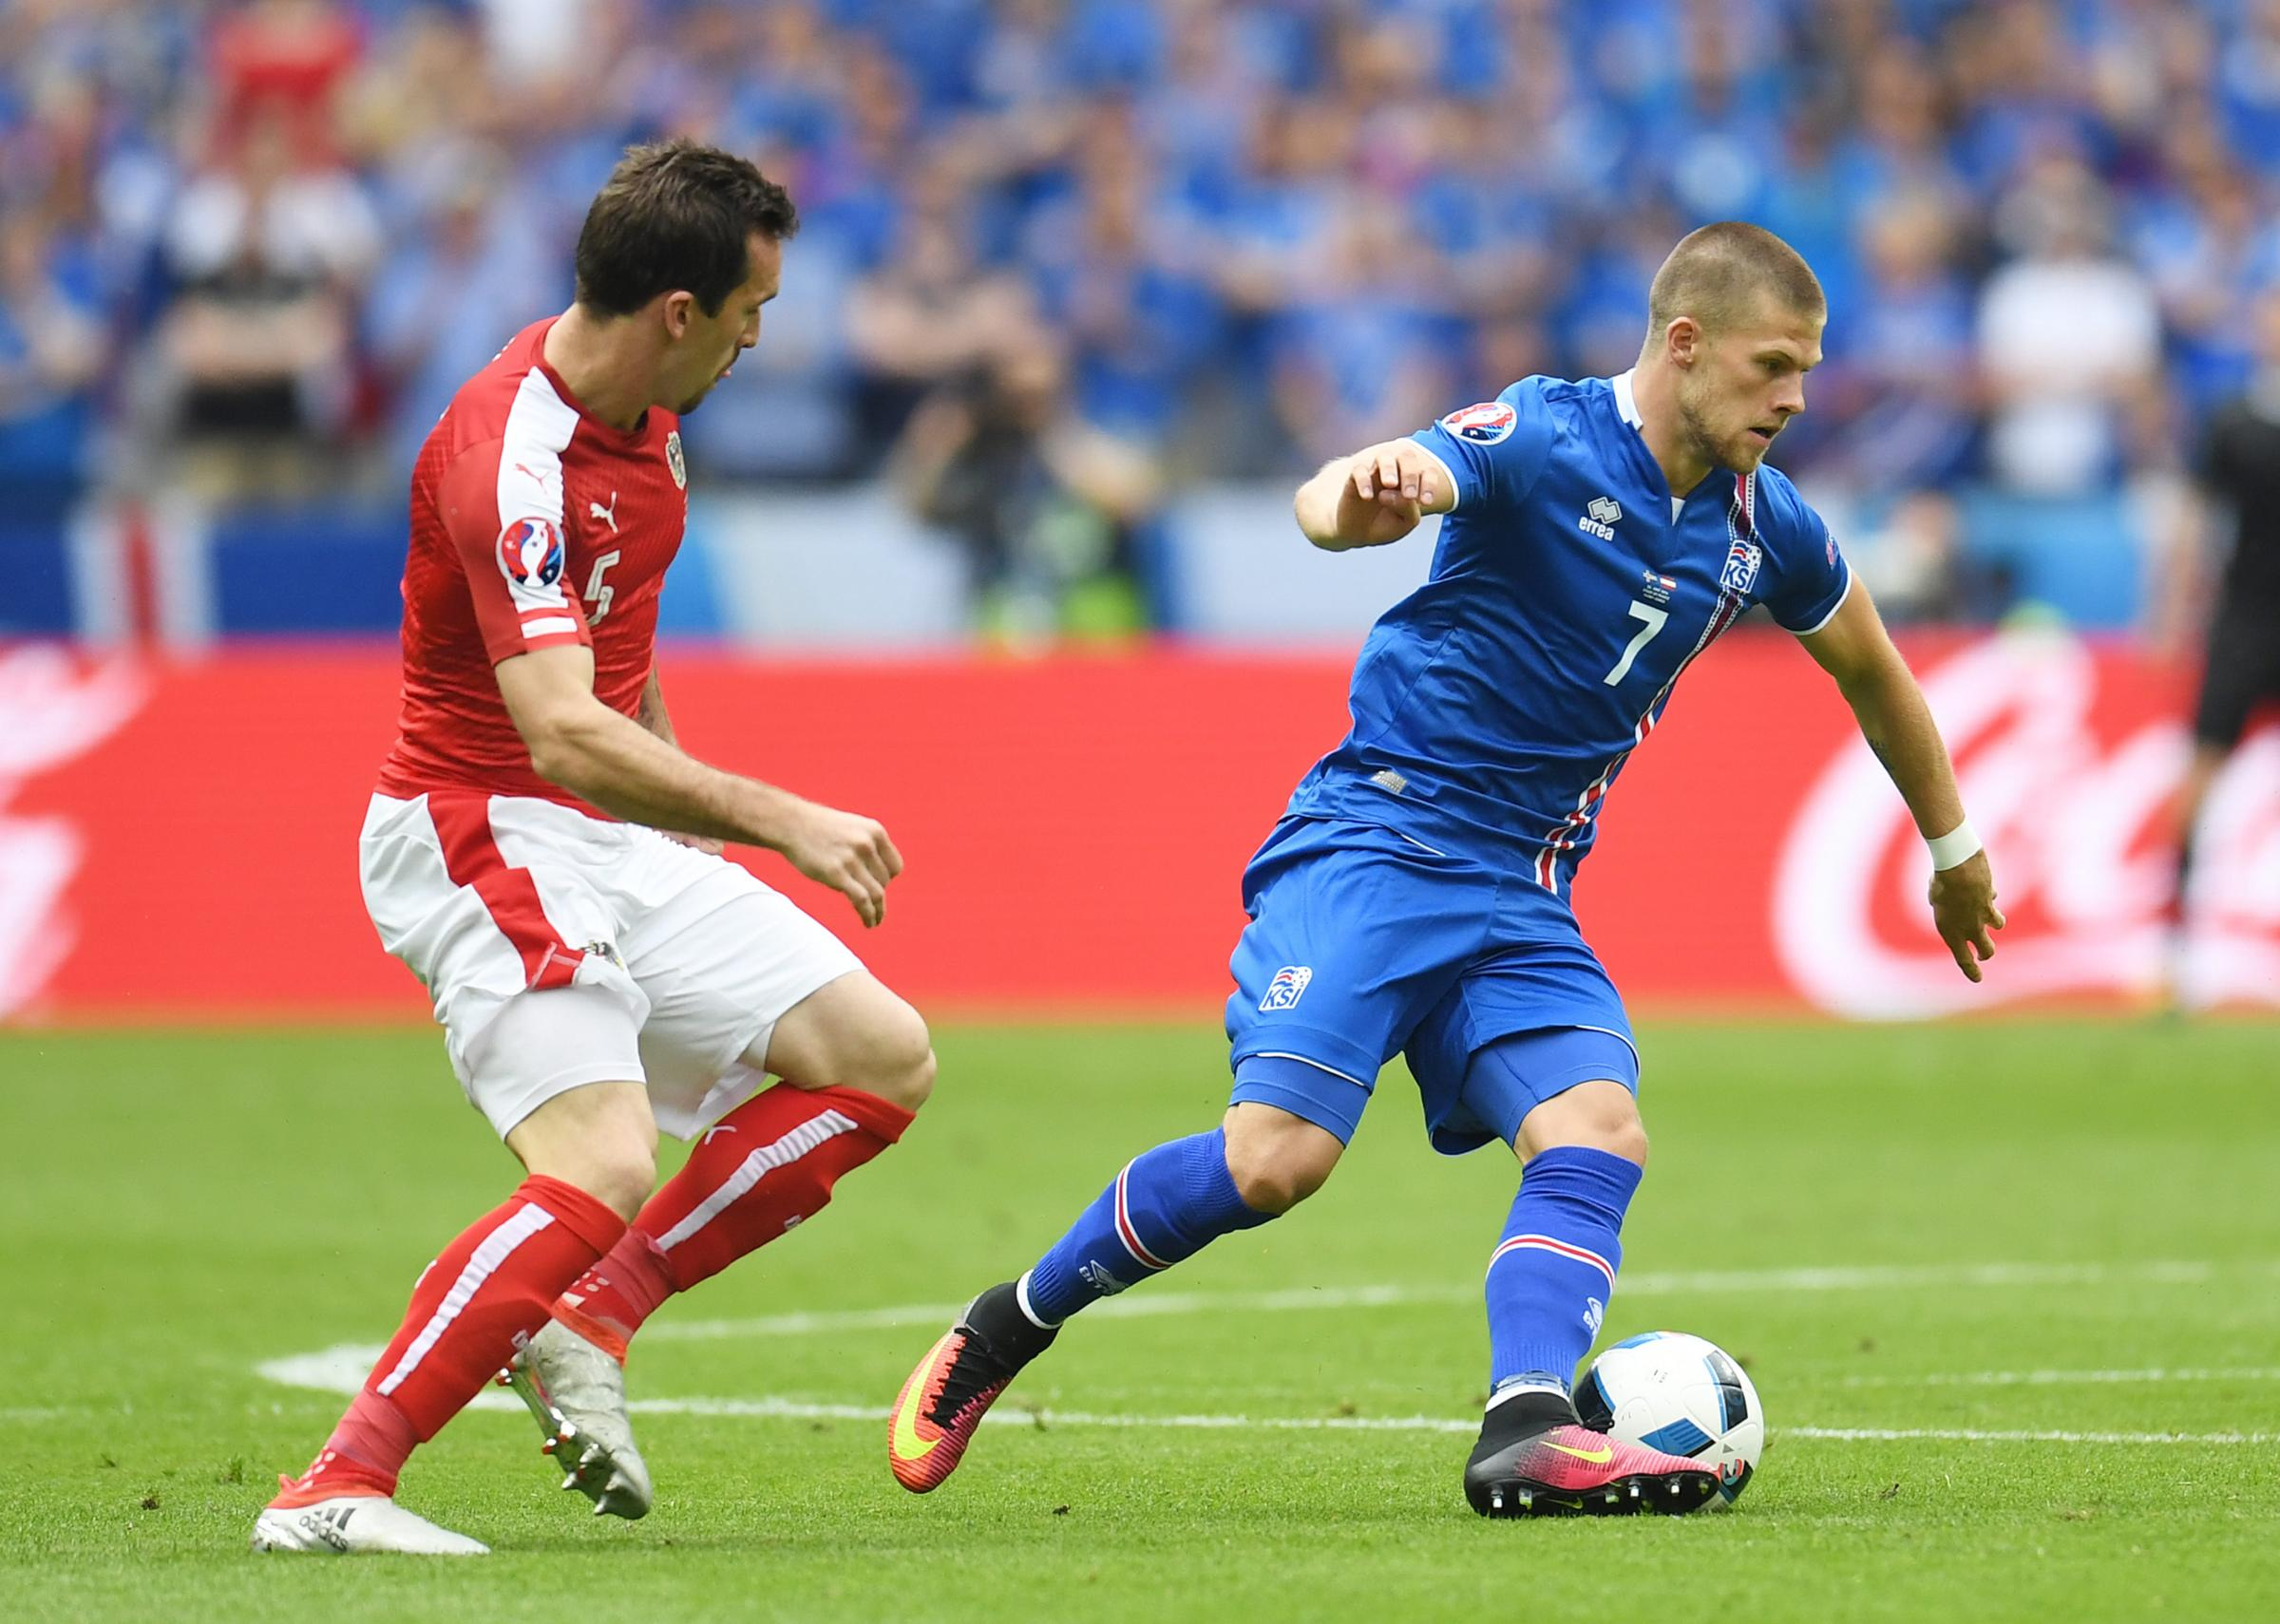 Iceland winger Johann Berg Gudmundsson is on his way to the World Cup